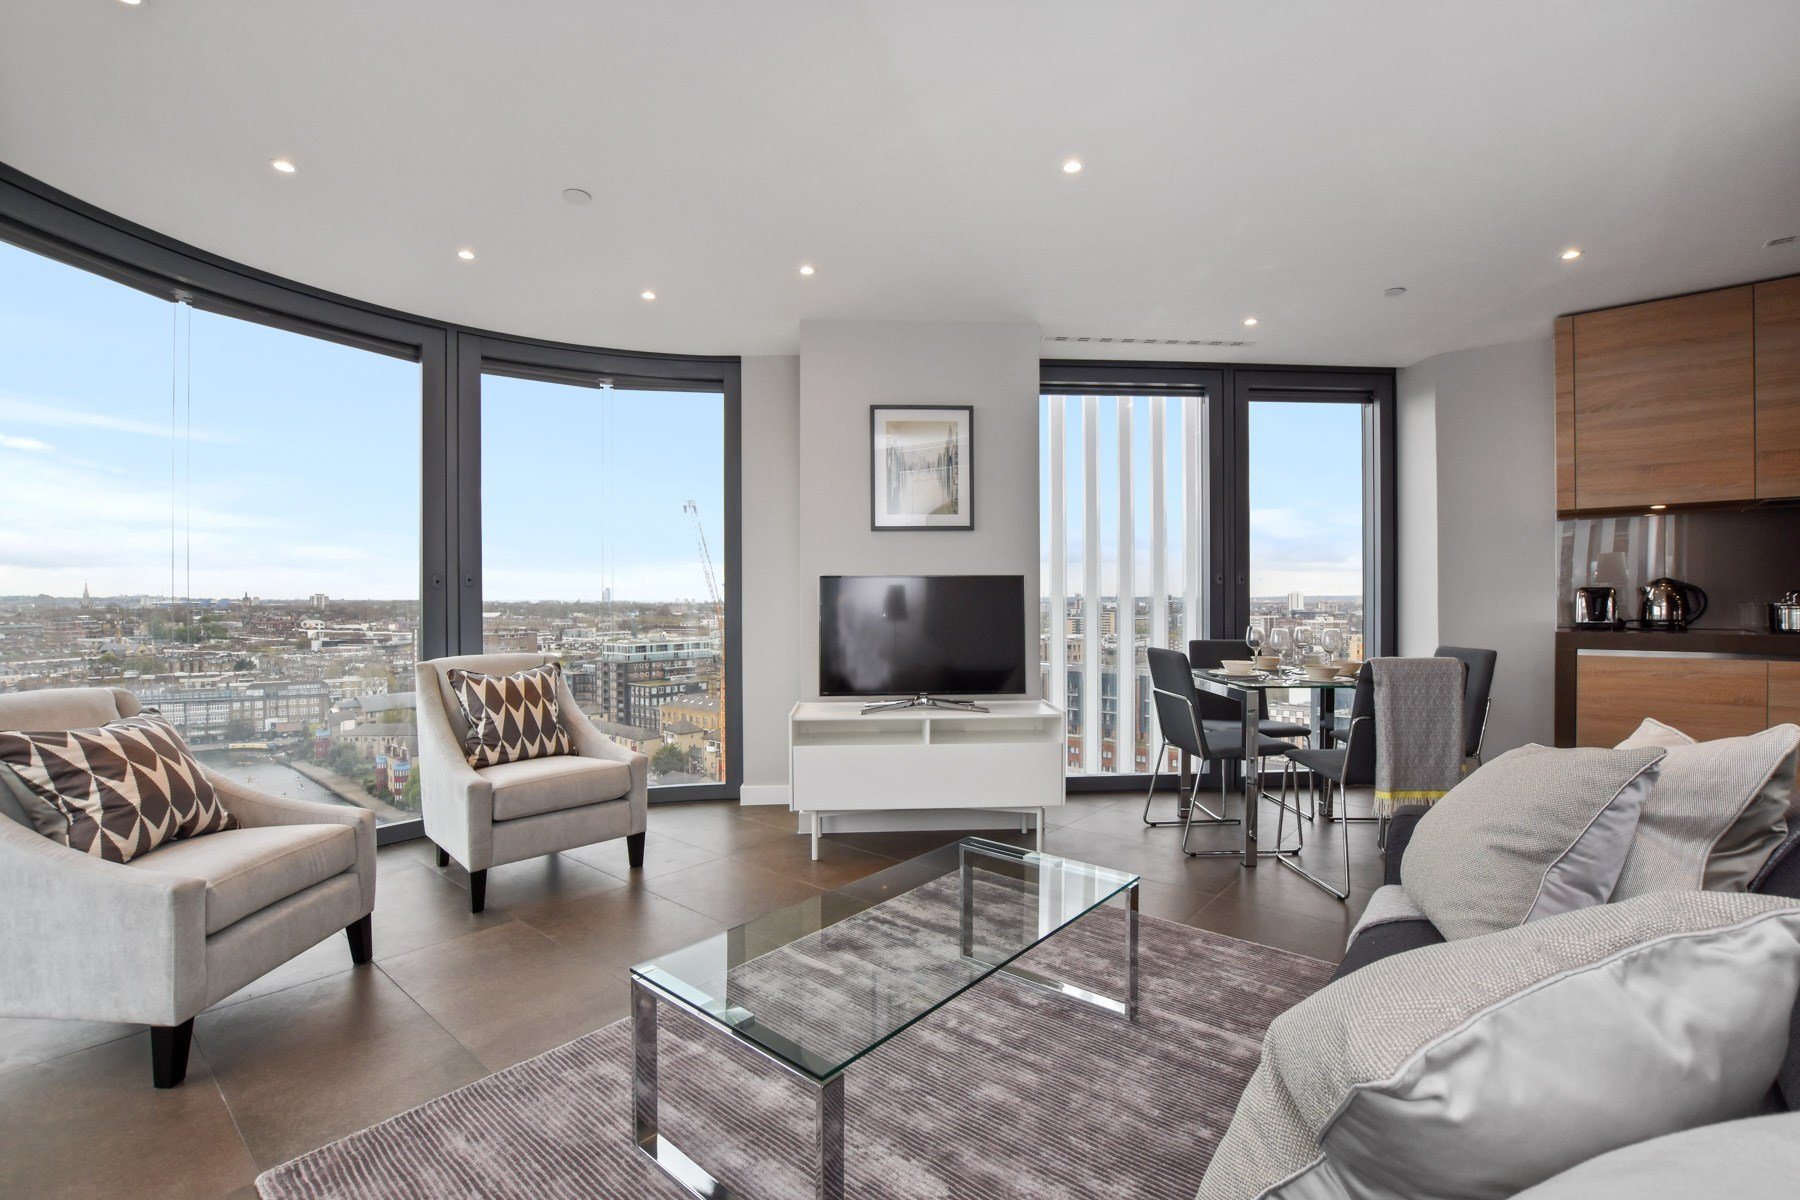 Best 2 Bed Flat To Rent City Road London Ec1V 1Aj With Pictures